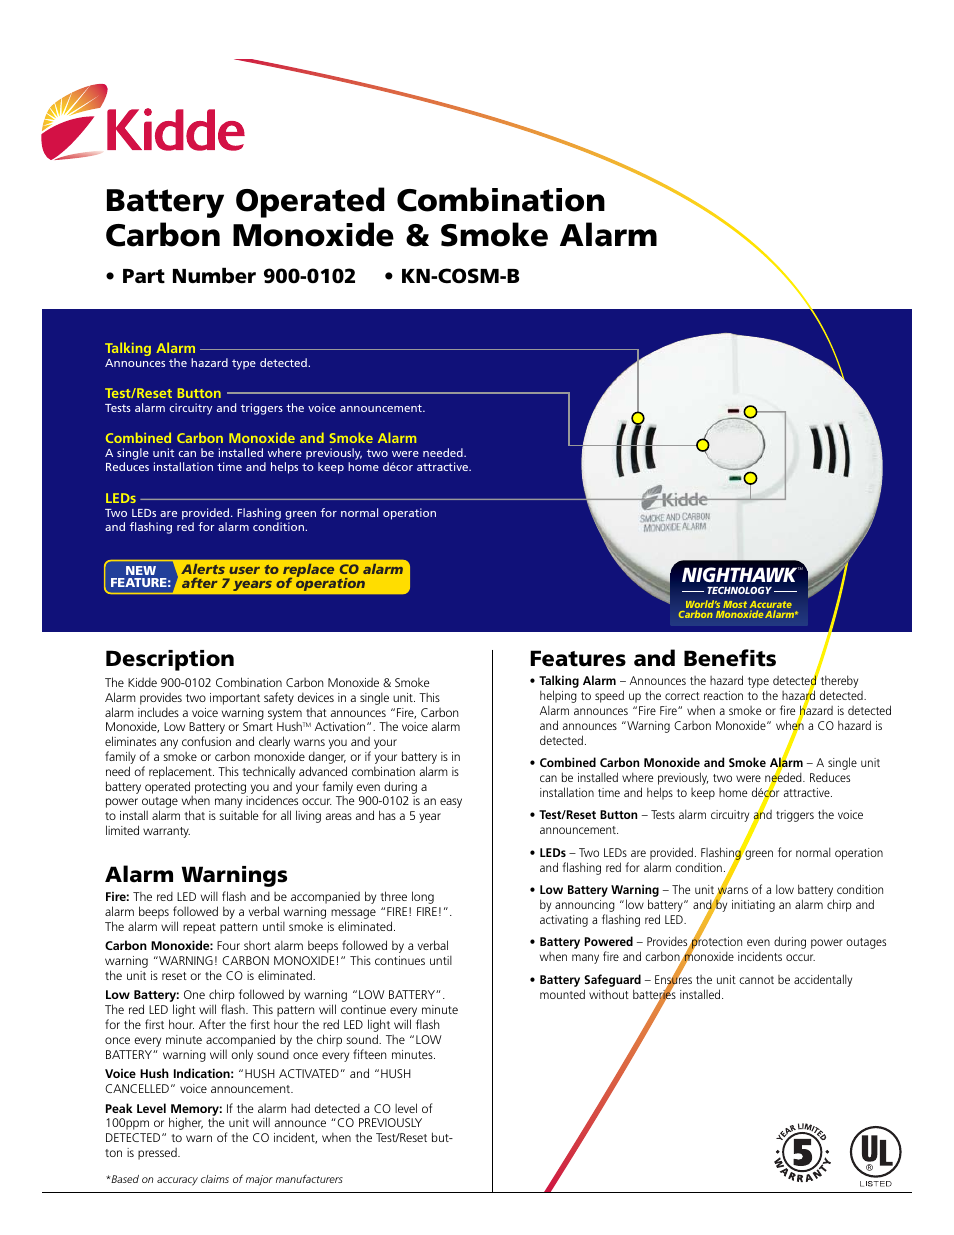 Kidde Combination Smoke and Carbon Monoxide Alarm KN-COSM-B User Manual   2  pages